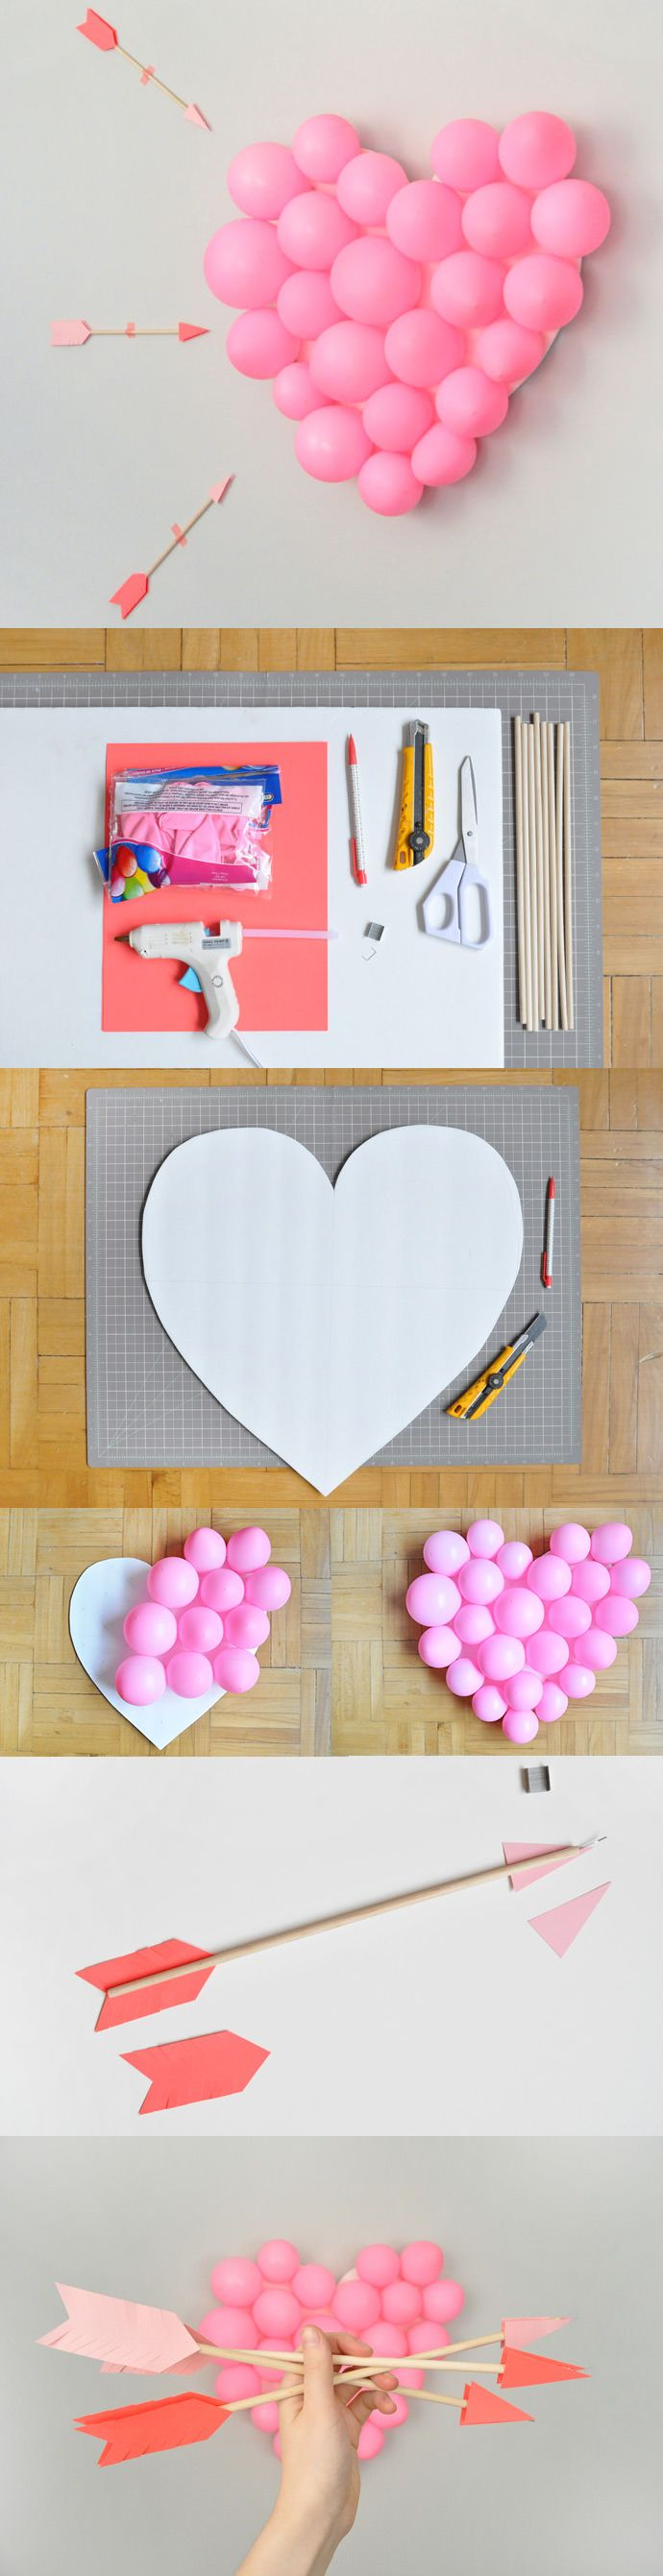 The 25+ best Anti valentines day ideas on Pinterest | DIY ...